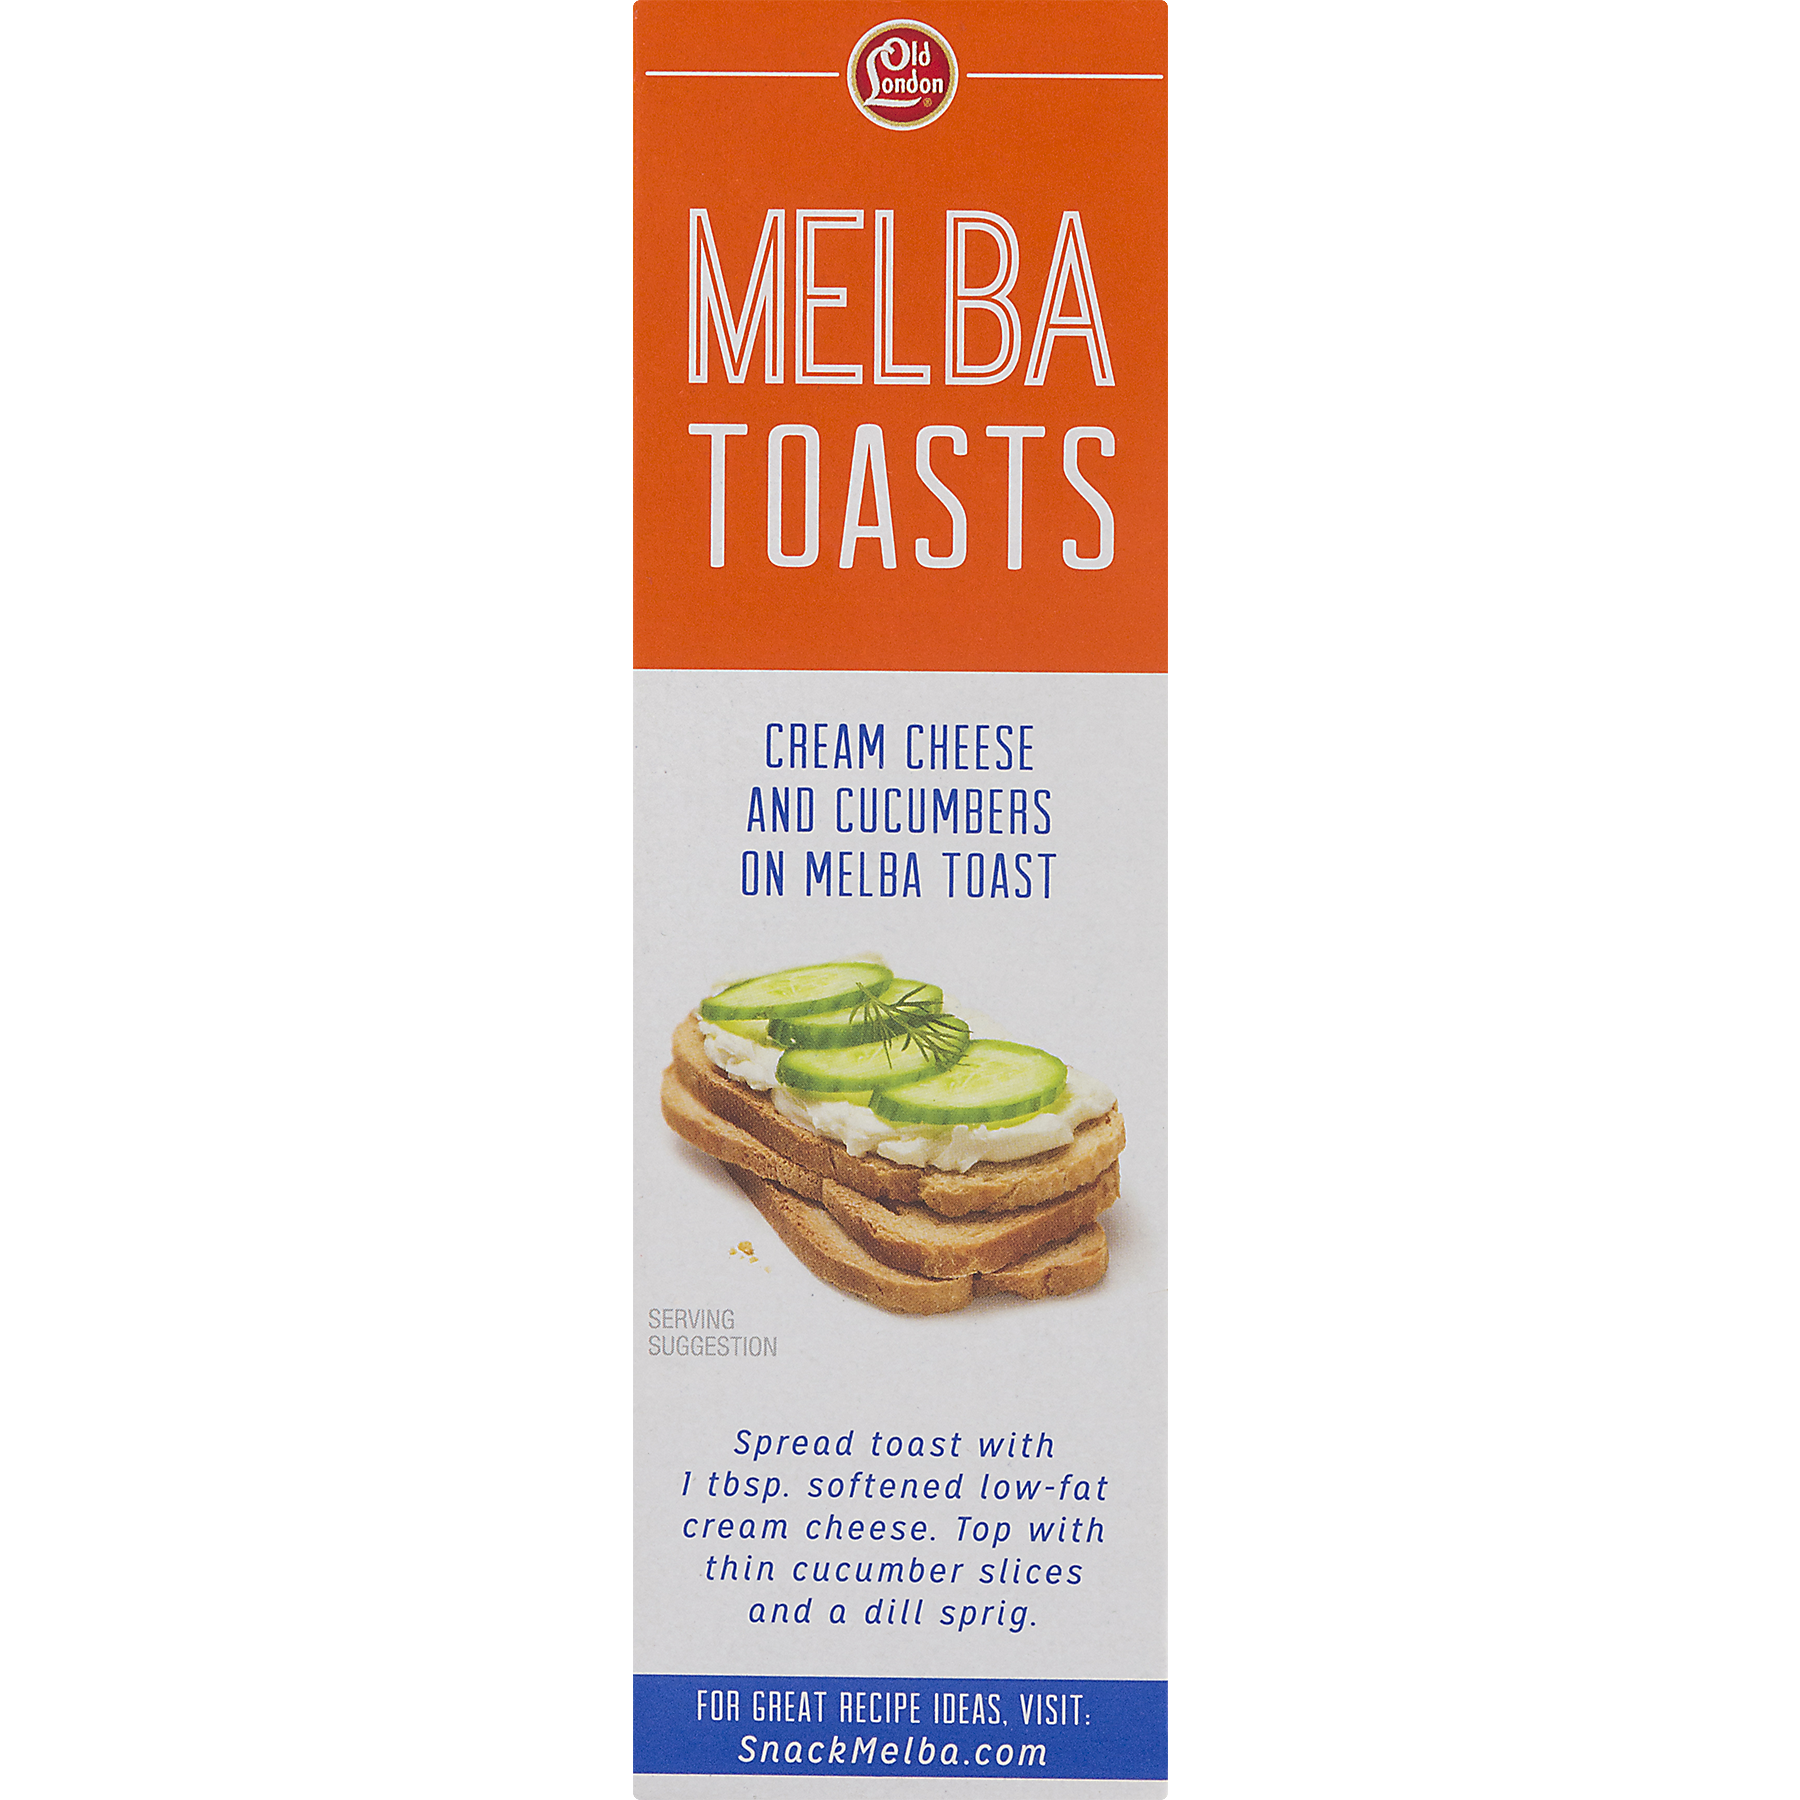 Transparent toast old. London classic melba oz